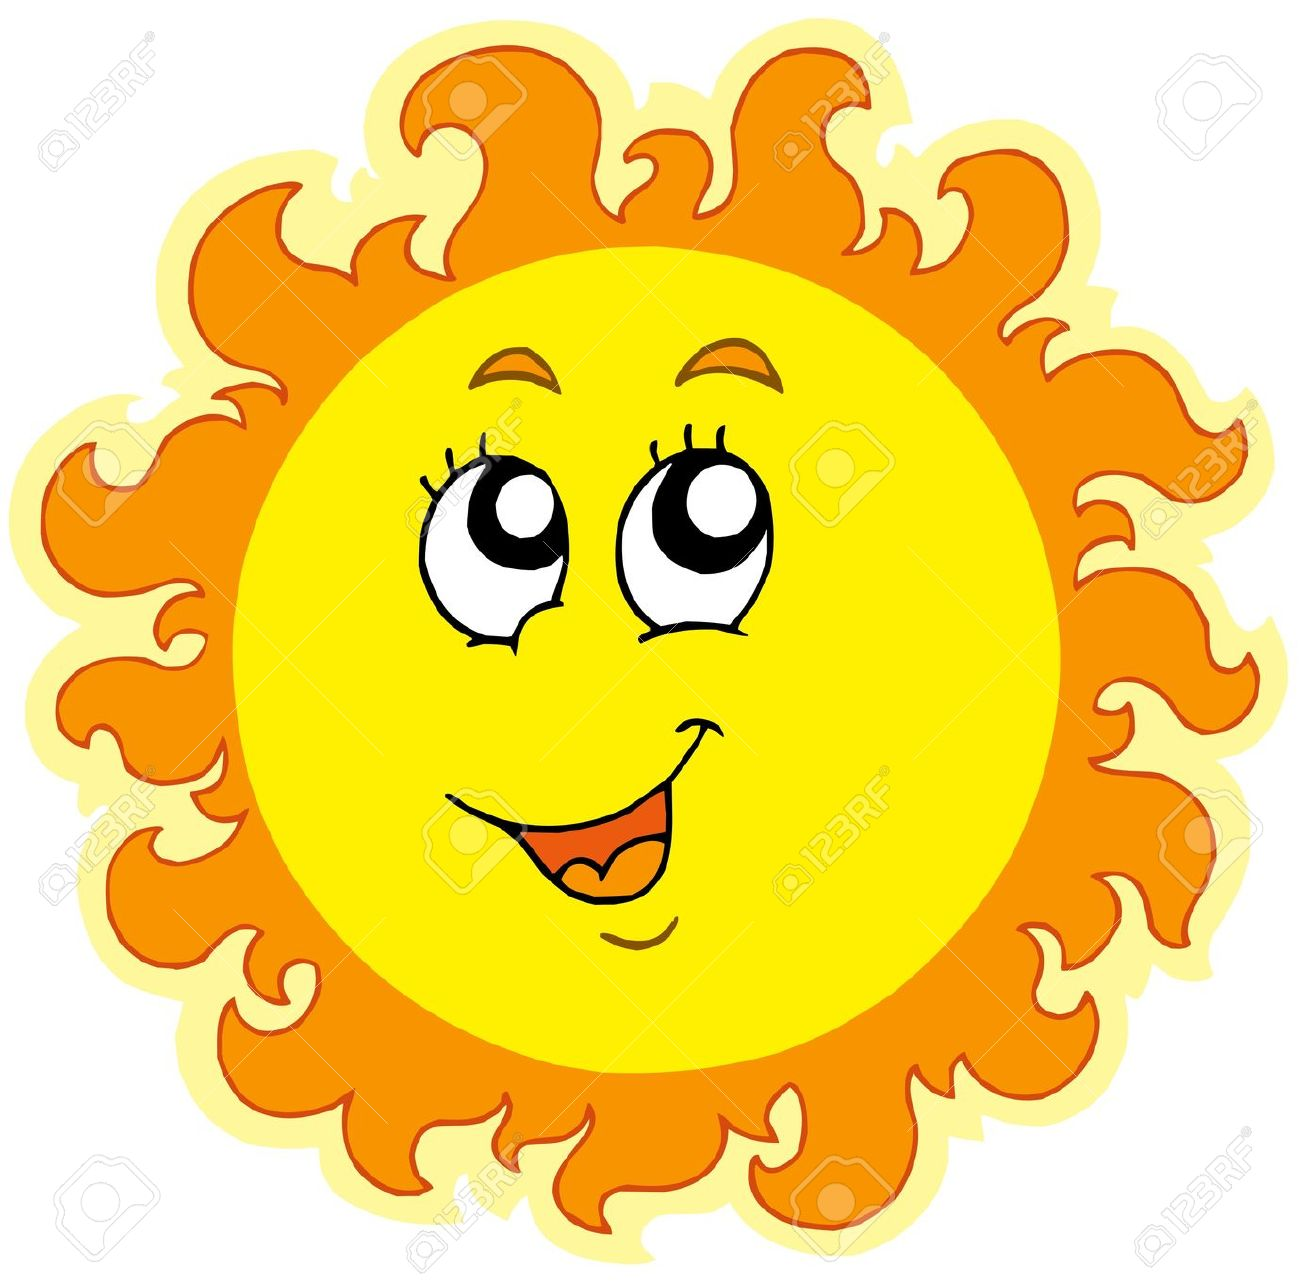 Sun i feel clipart freeuse library Sweating Sun Clipart | Free download best Sweating Sun ... freeuse library